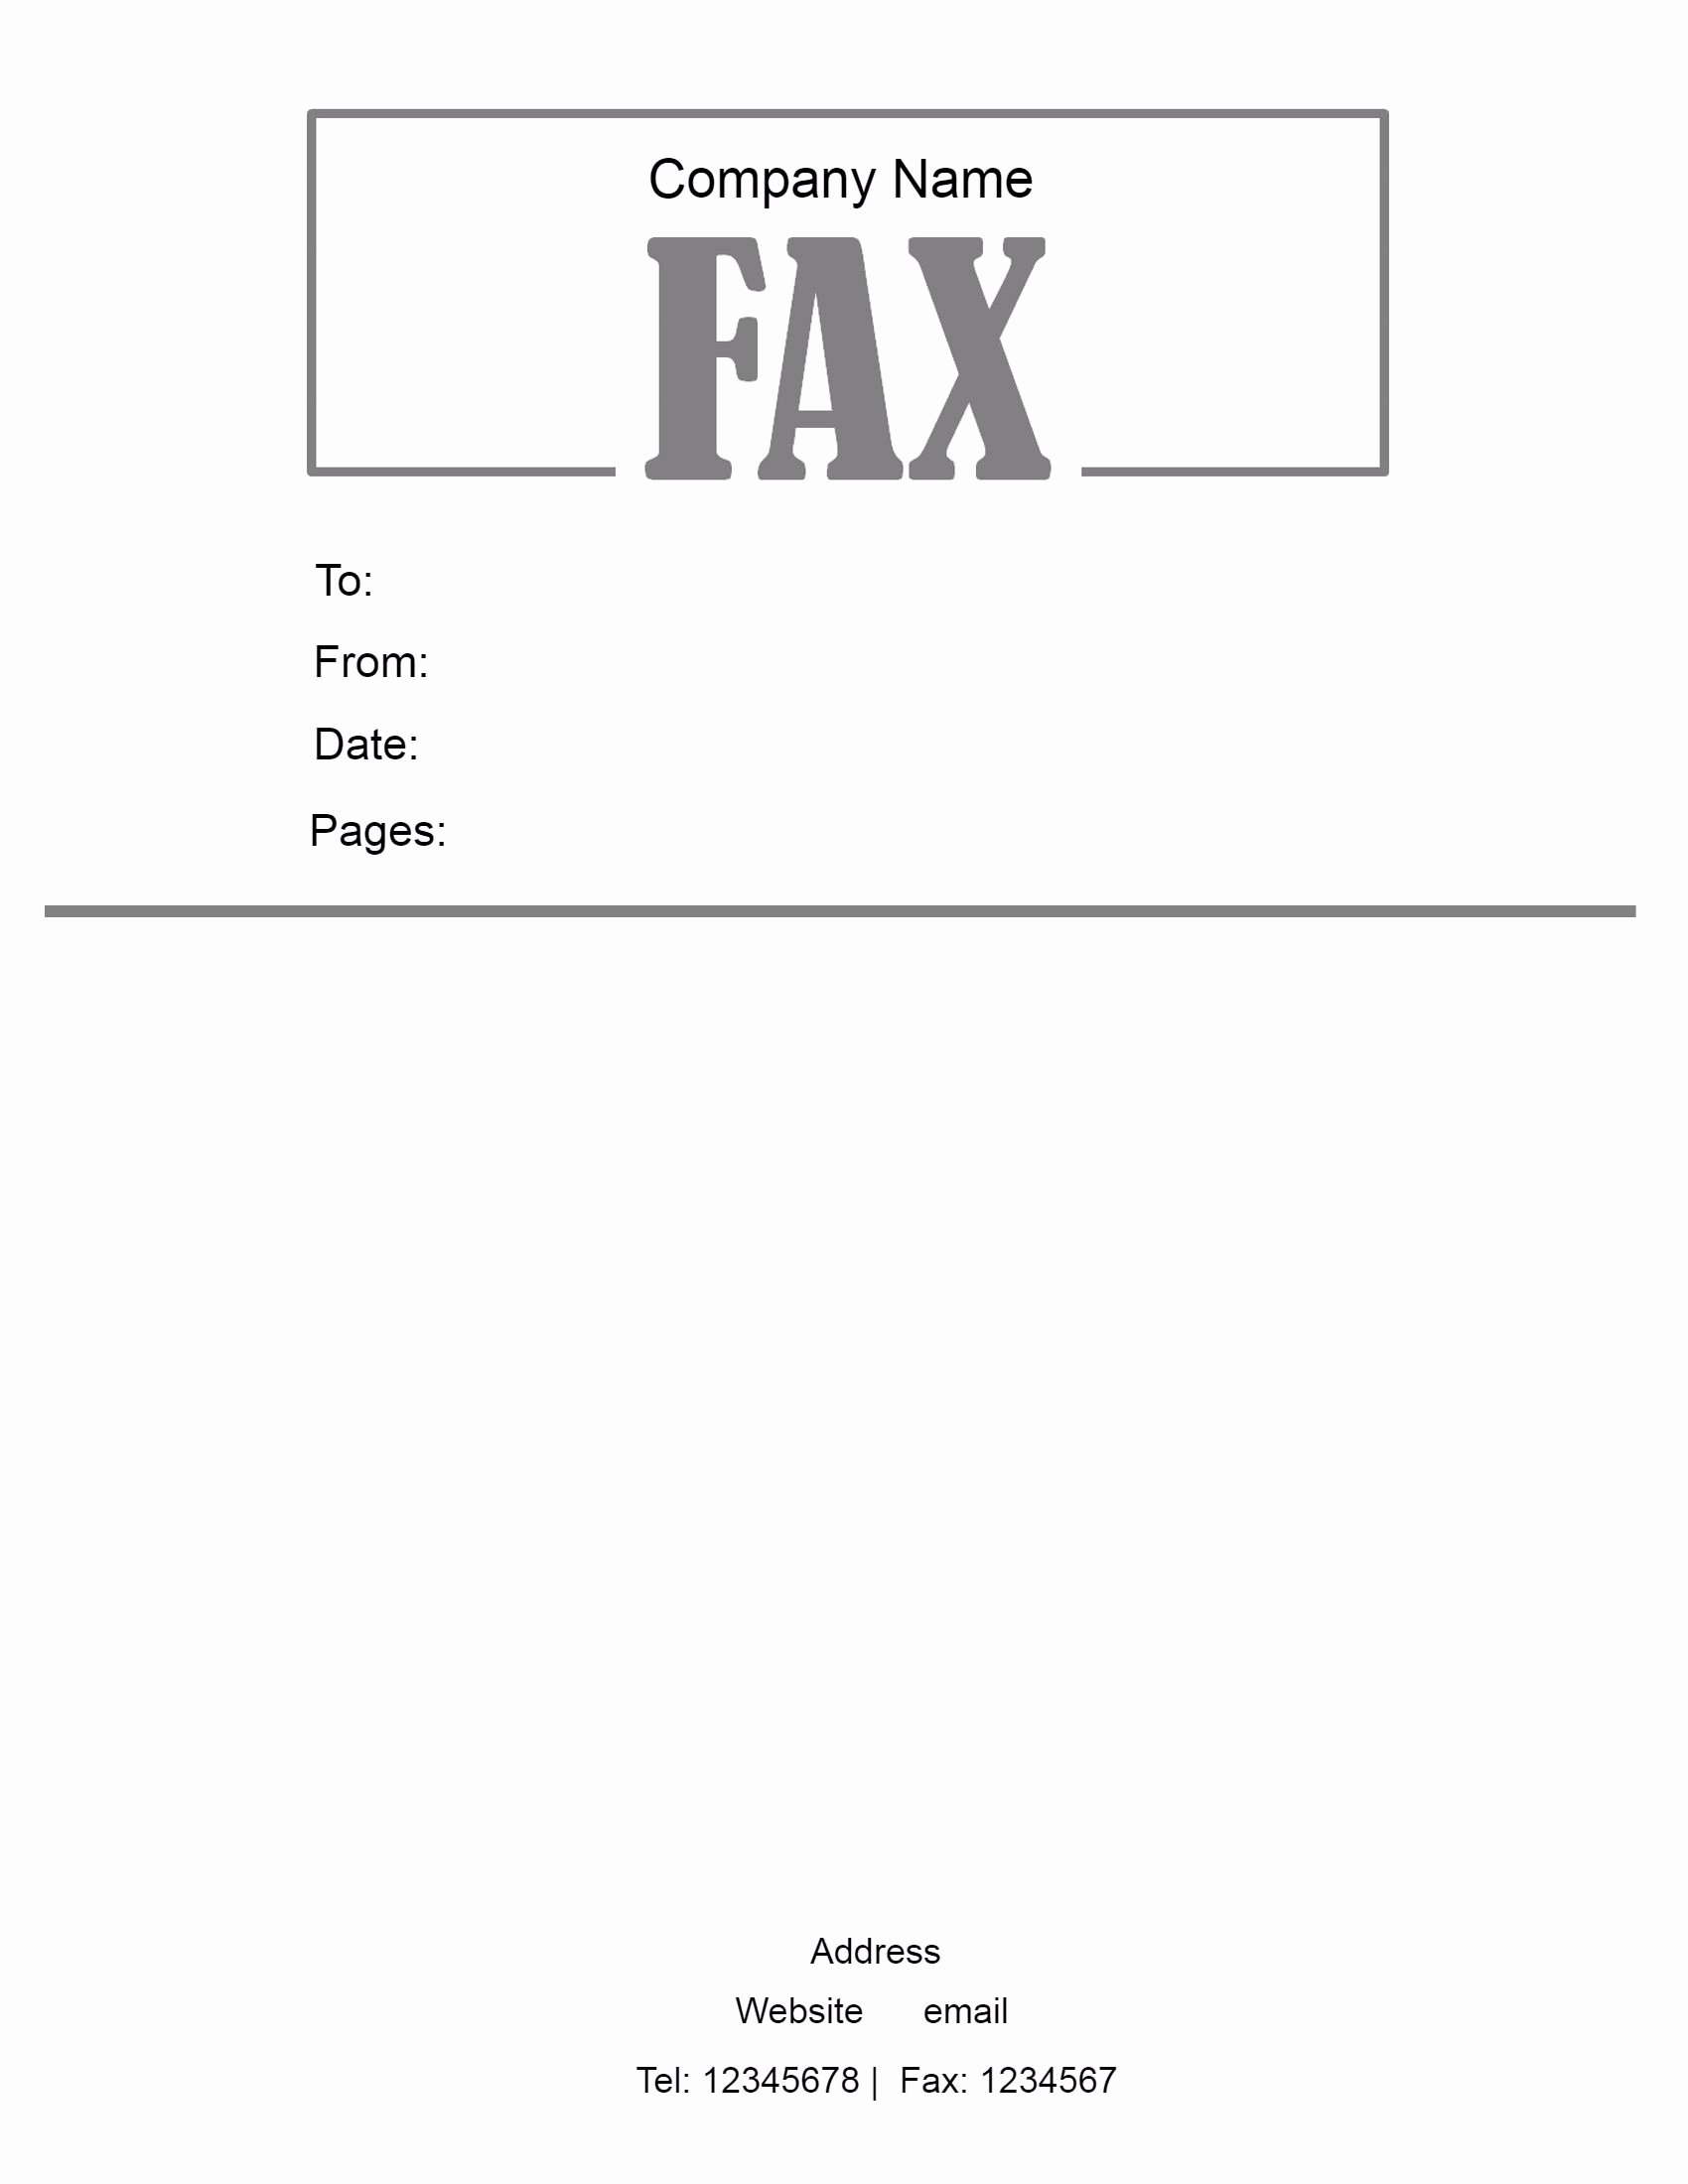 Fax Cover Sheet format Inspirational Free Fax Cover Letter Template